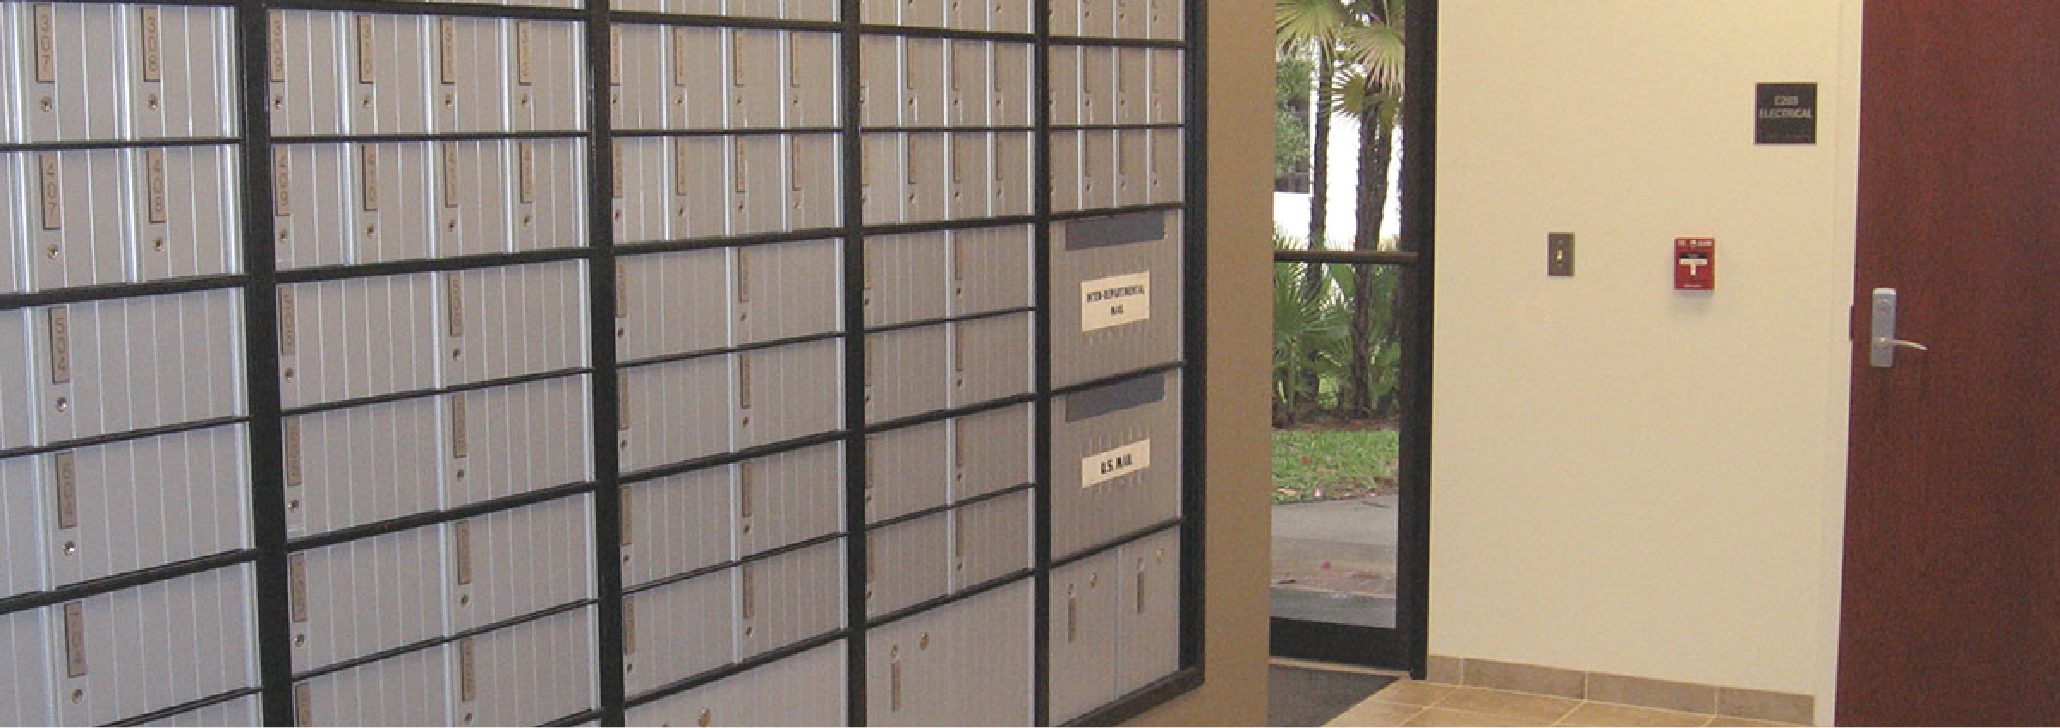 Mailbox Rental and Mail Forwarding